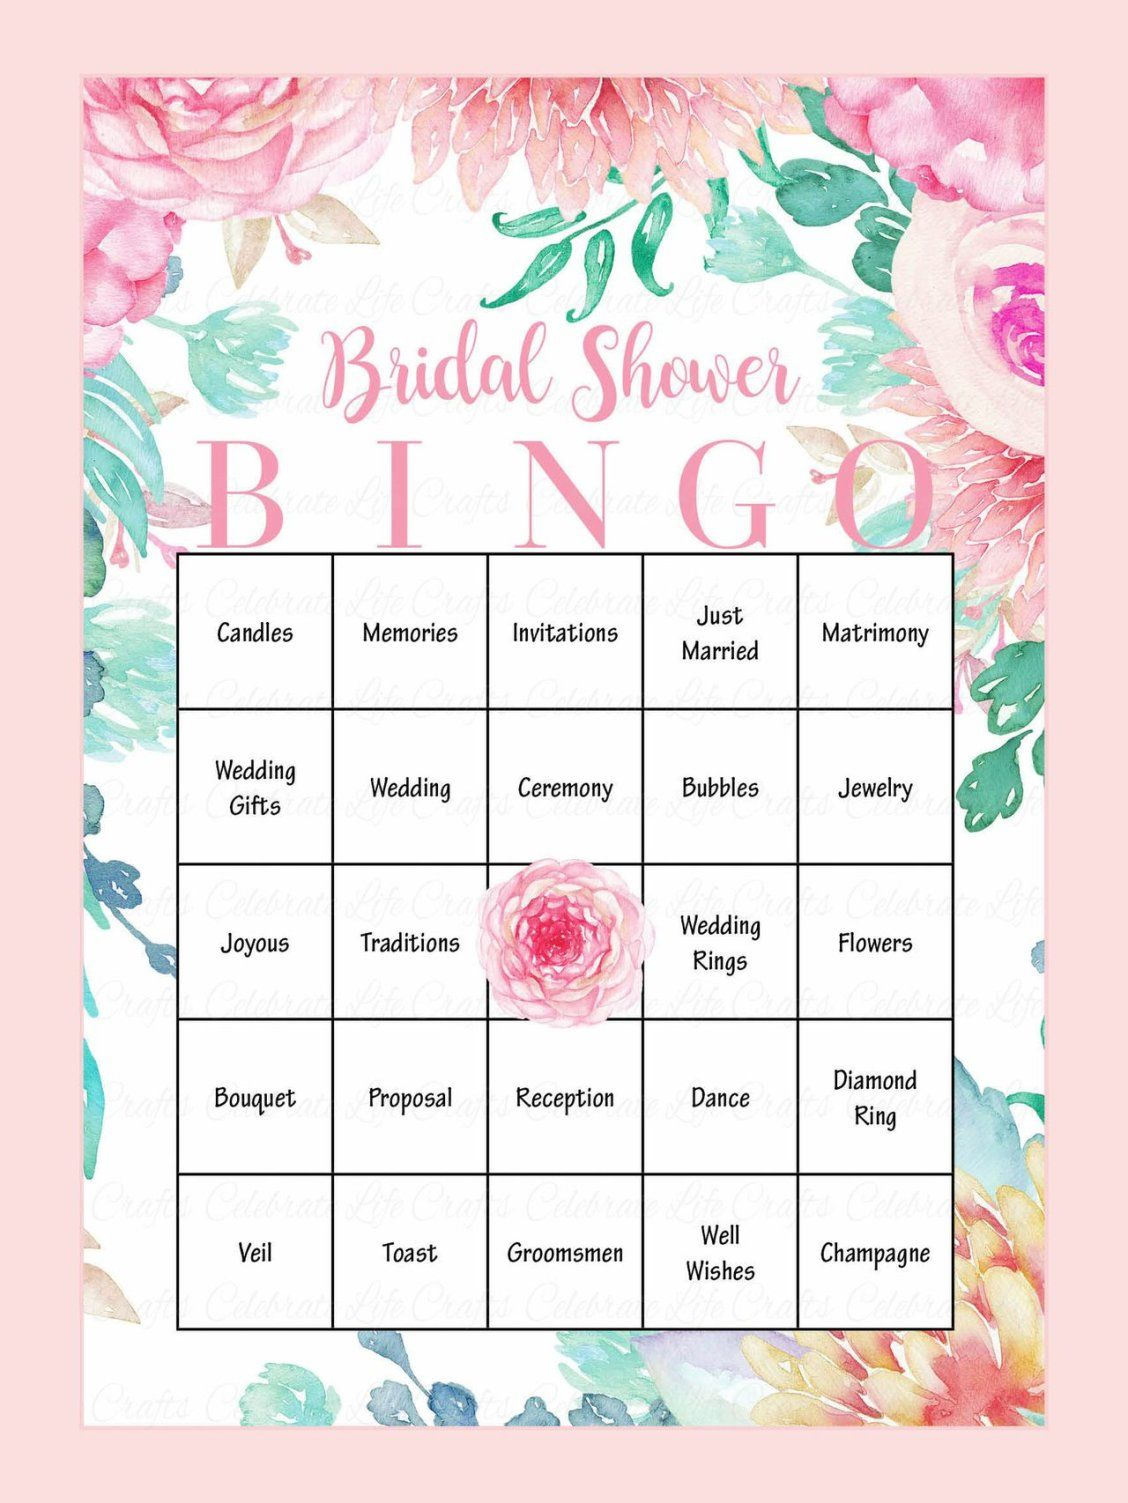 14 Printable Bridal Shower Games Guests Love Bridal Shower Bingo Printable Bridal Shower Games Printable Bridal Shower Bingo